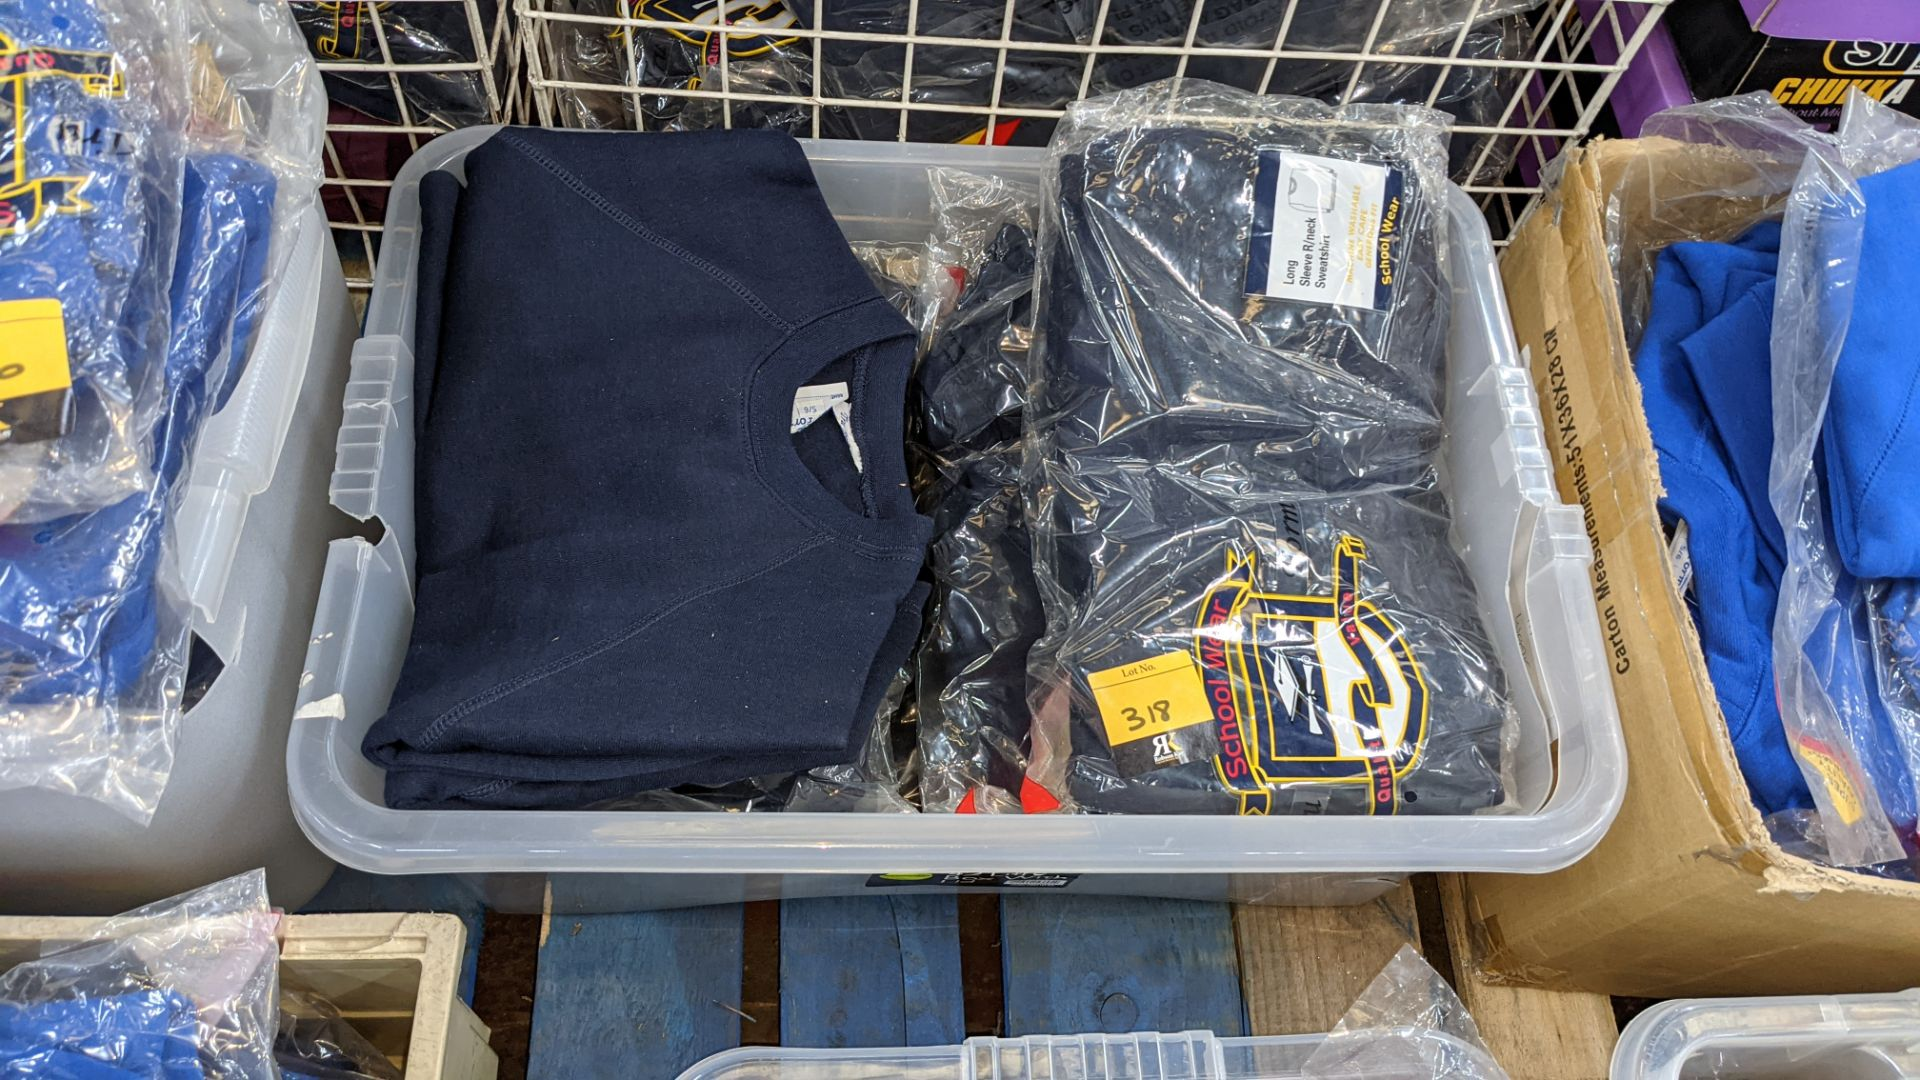 Approx 19 off blue children's sweatshirts & similar - the contents of 1 crate. NB crate excluded - Image 2 of 4